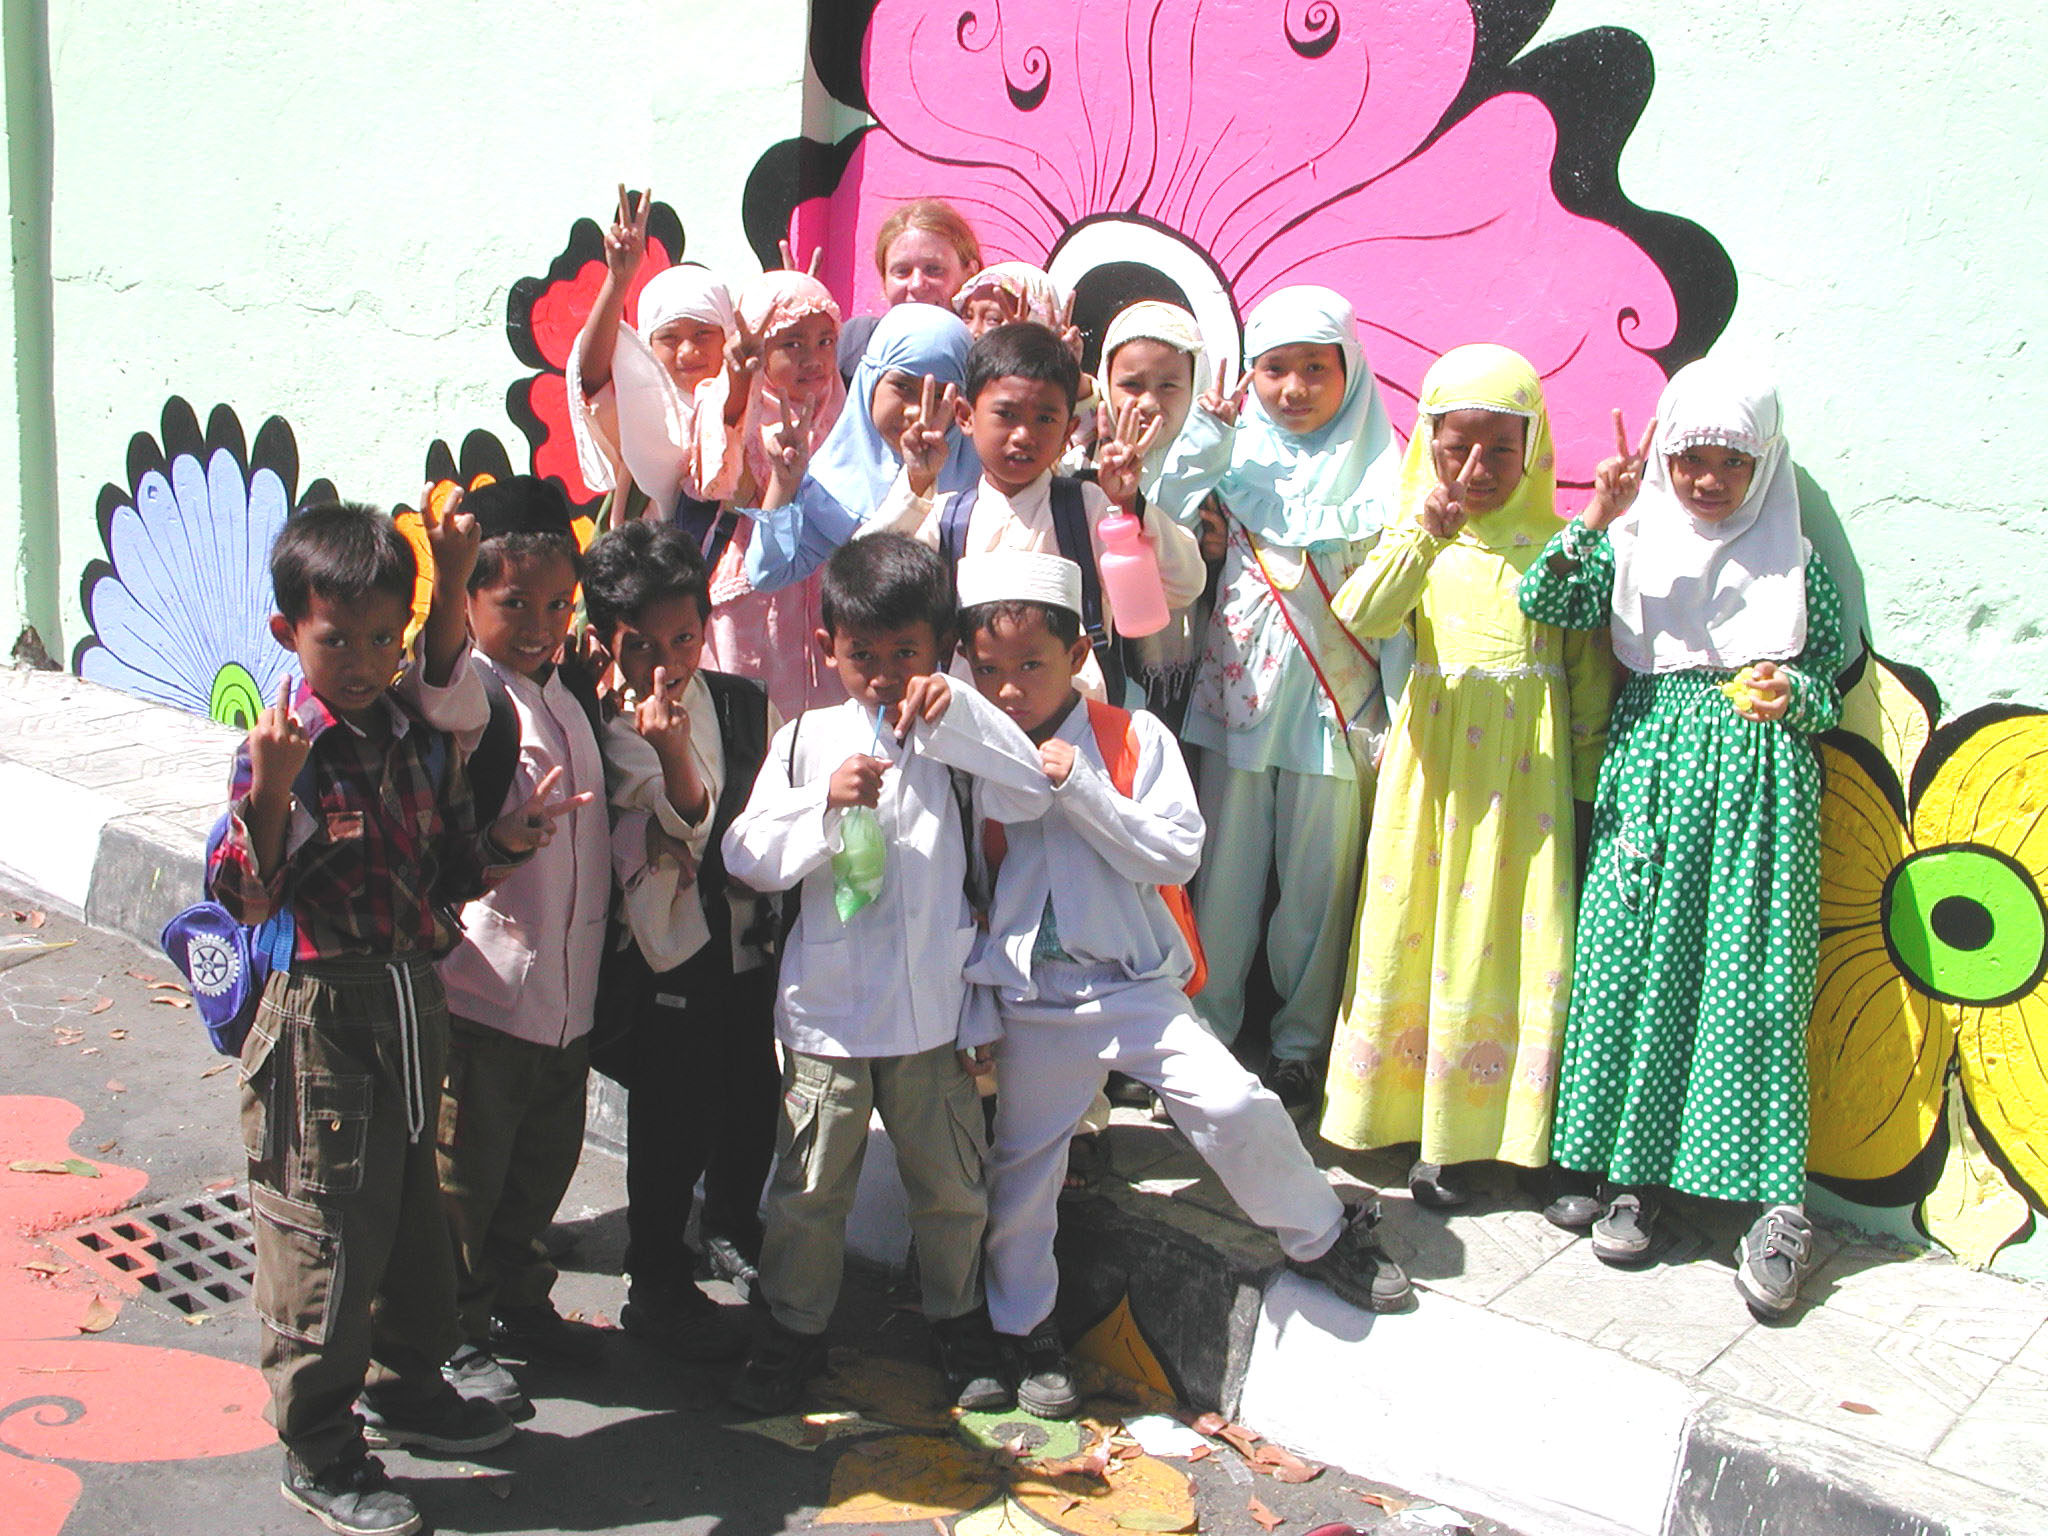 Megan -- kids in Muslim clothes in front of mural #2.jpg